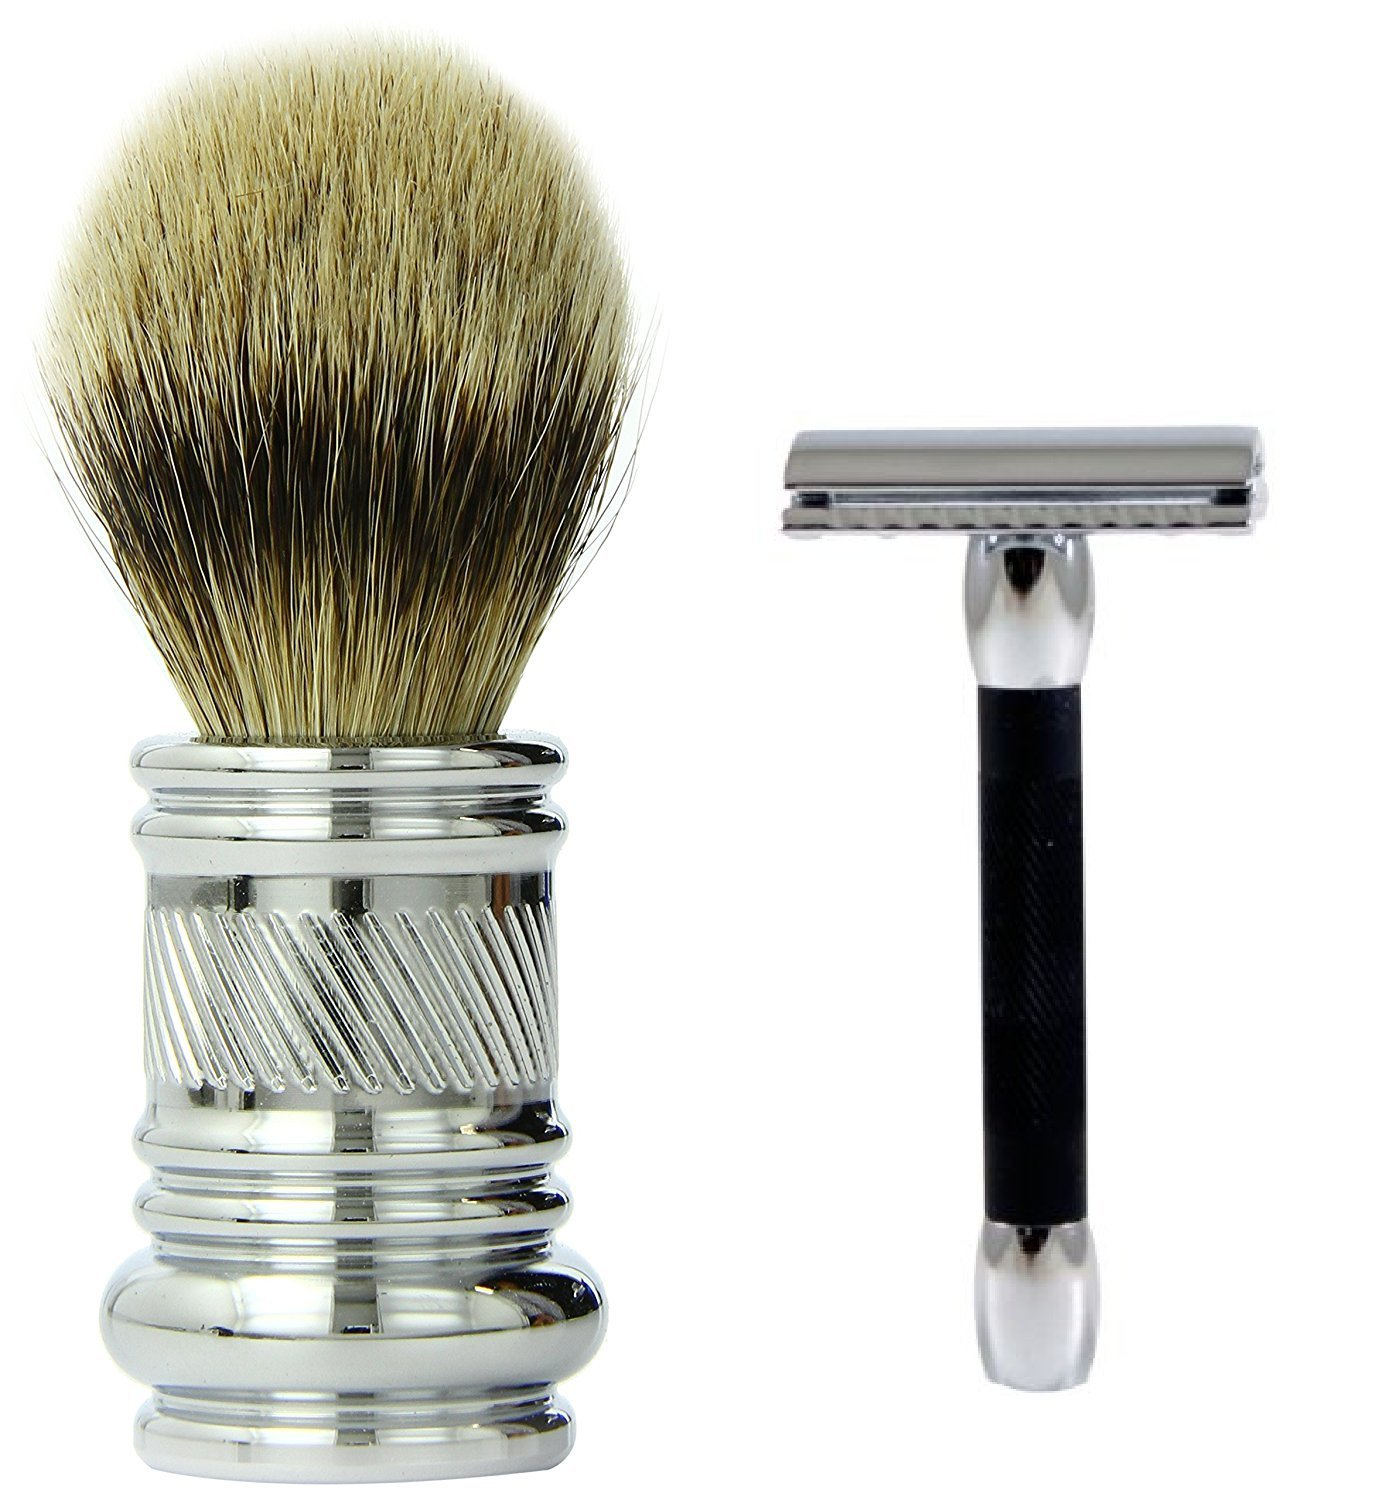 MGS Bundle Merkur-Razor Shaving Brush Chrome & More buying choices for Merkur 30C Safety Chrome/Black Razor